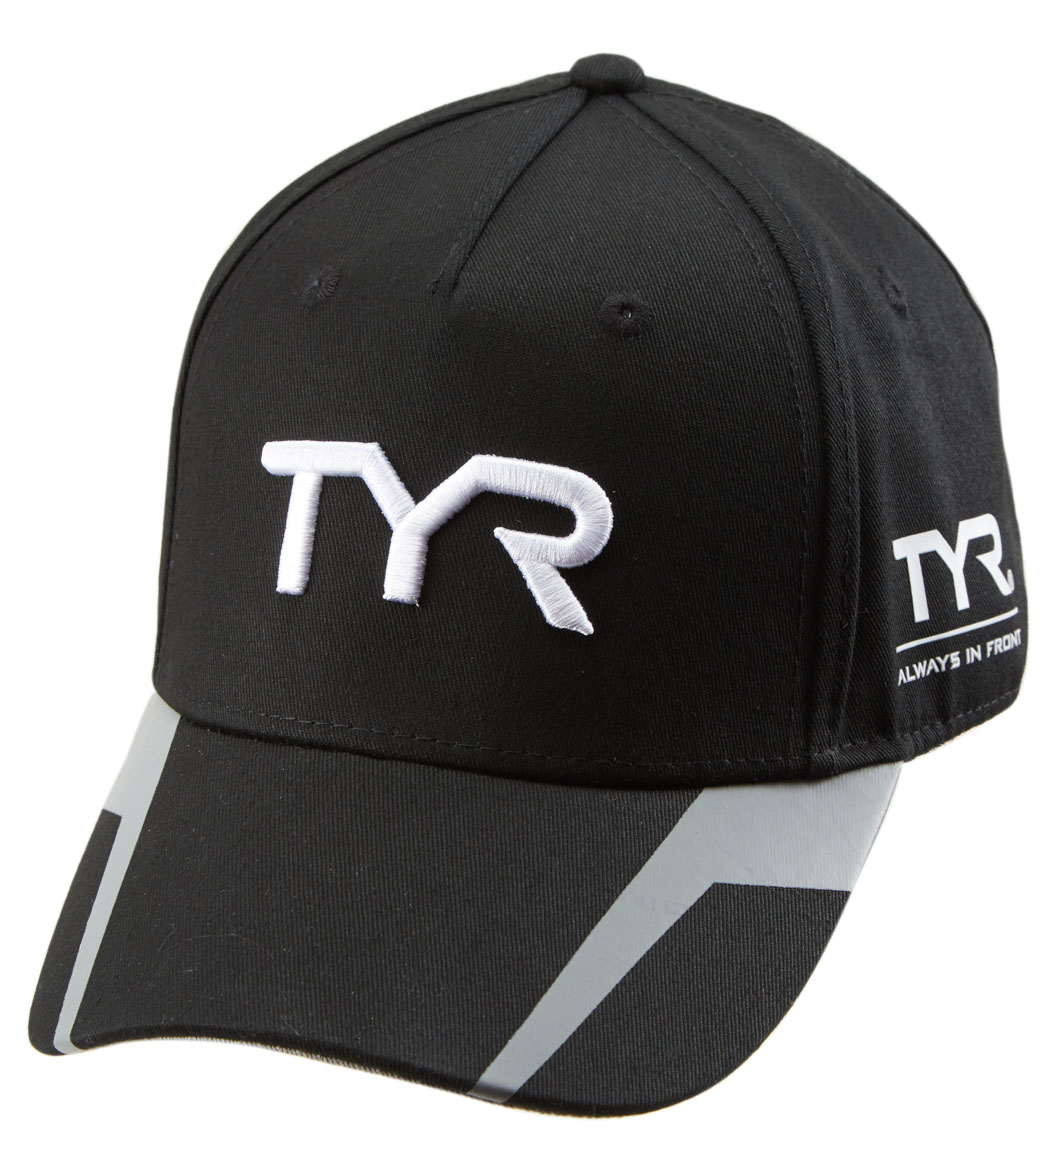 4d1bcd68e0ae3 TYR Always in Front Fast Track Adjustable Hat at SwimOutlet.com